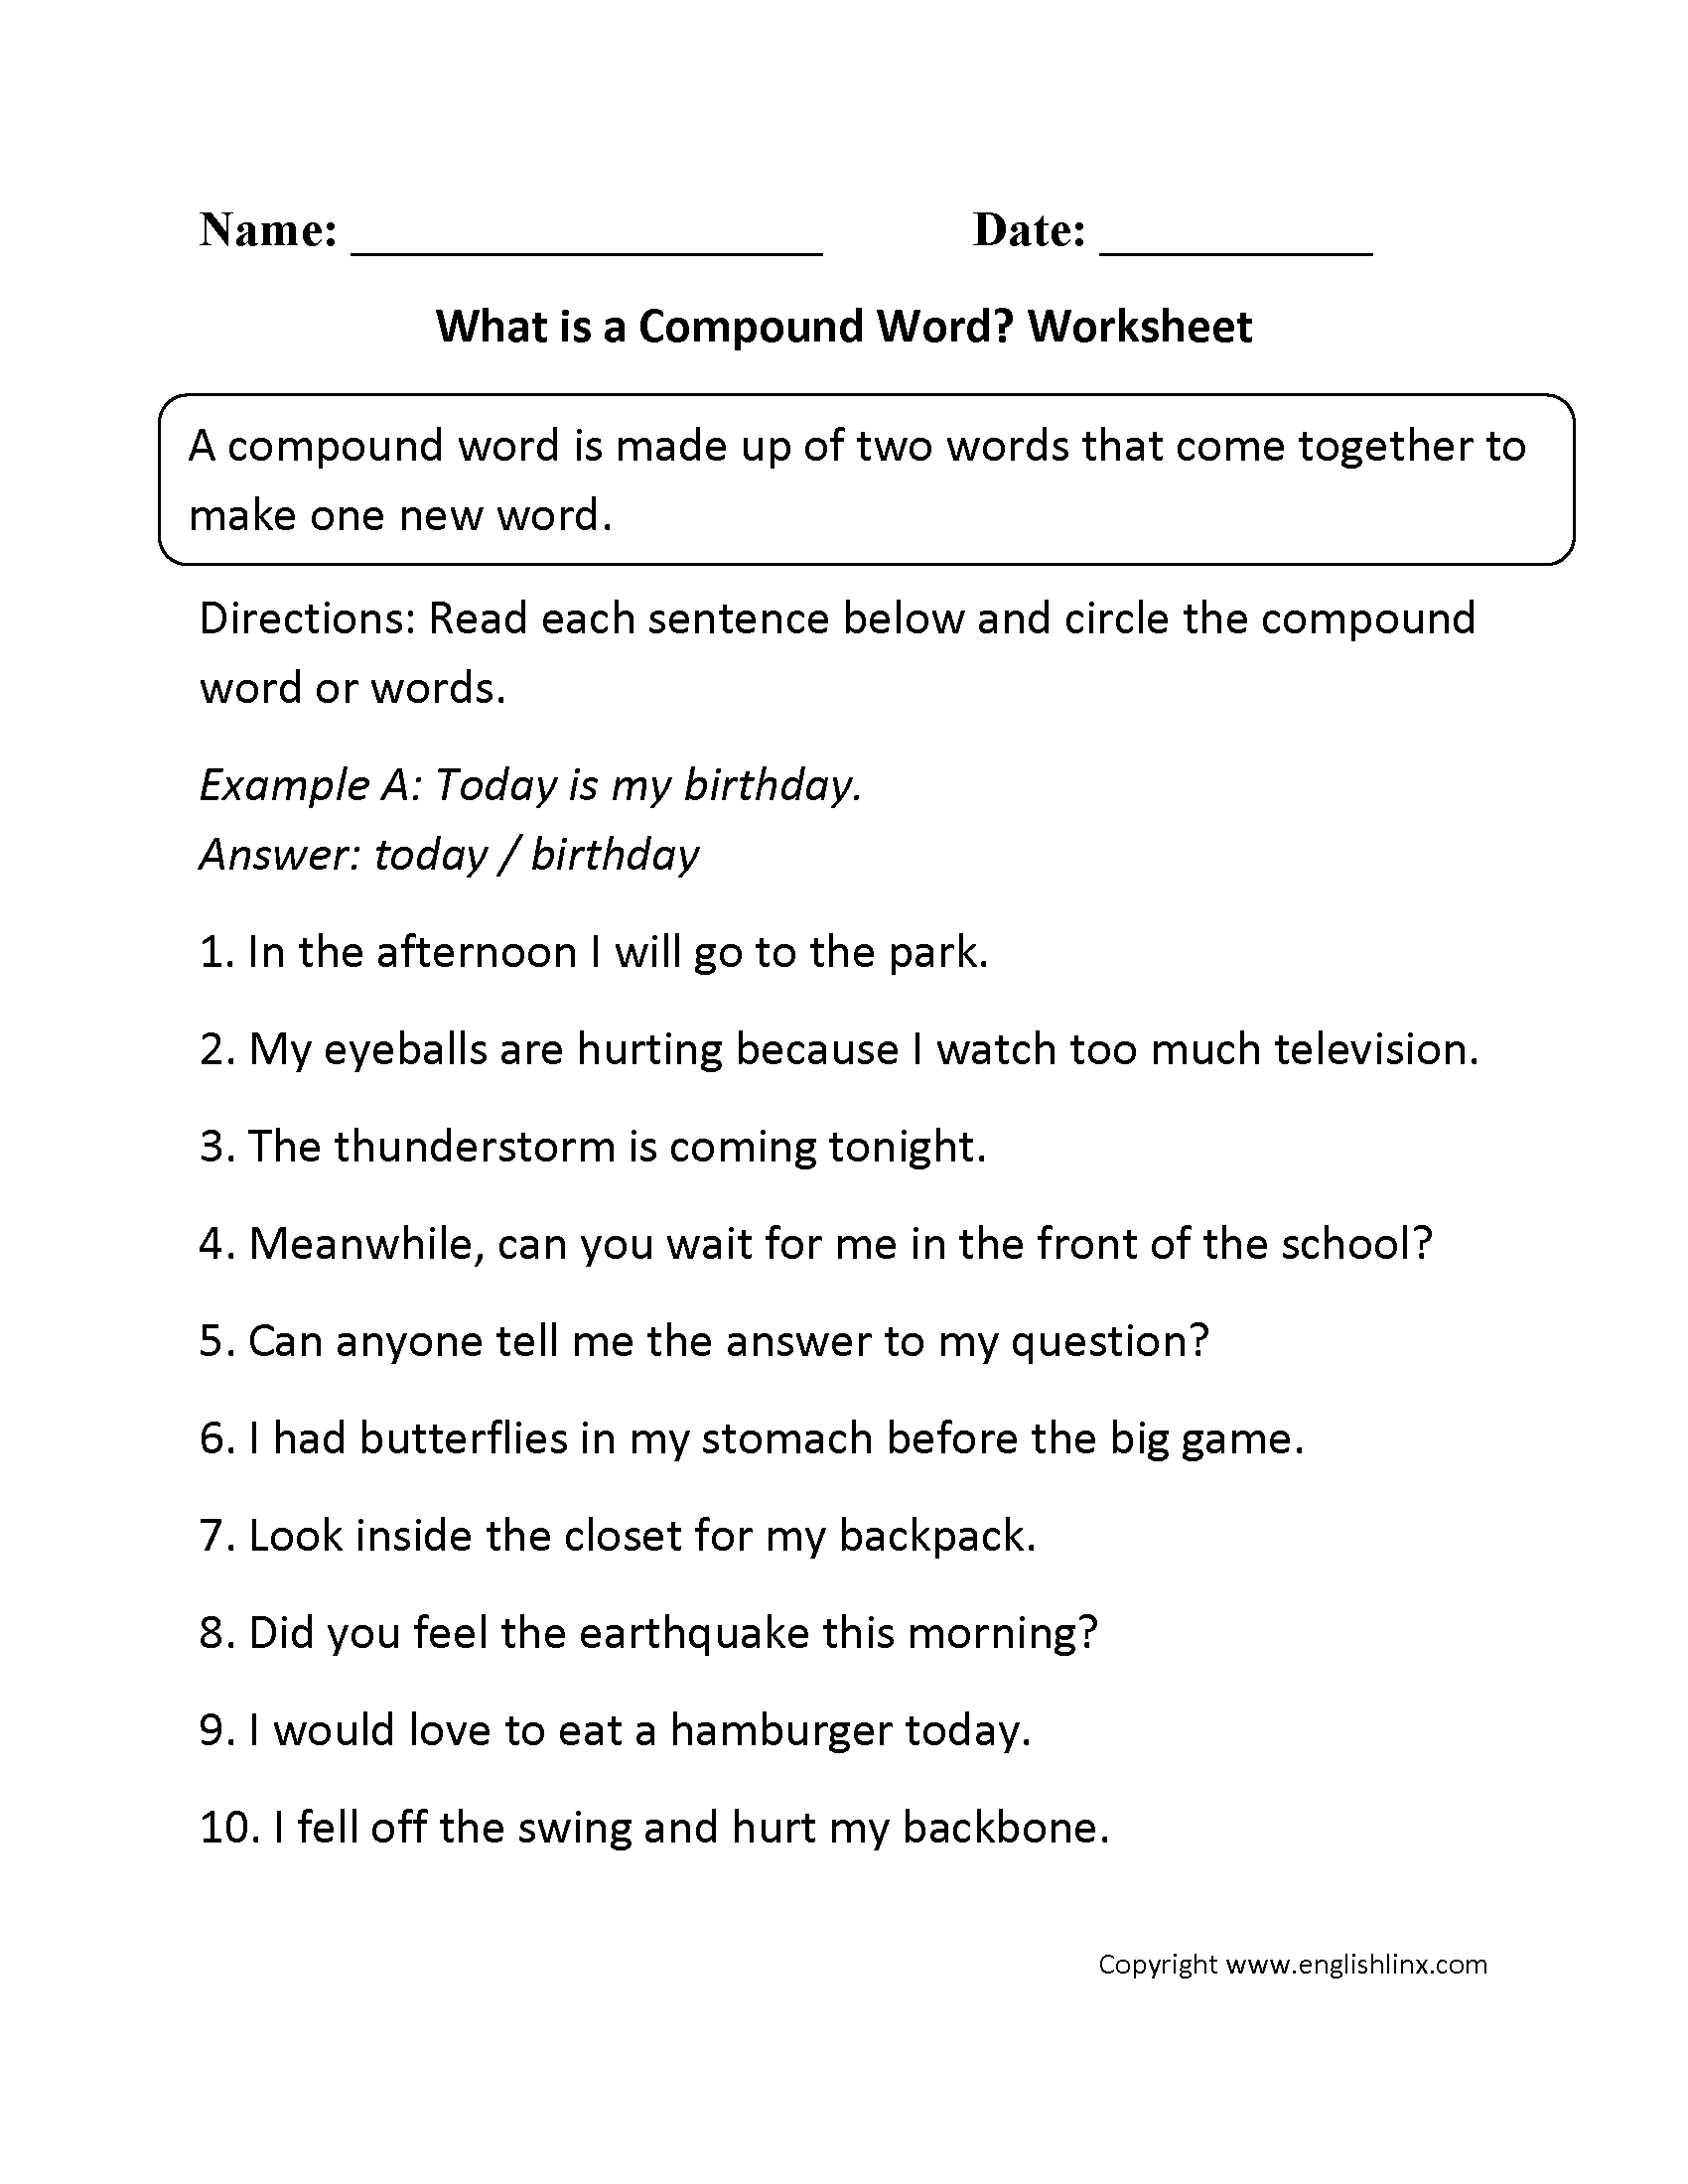 Worksheets Compound Words Worksheet grammar mechanics worksheets compound words what is a word worksheets